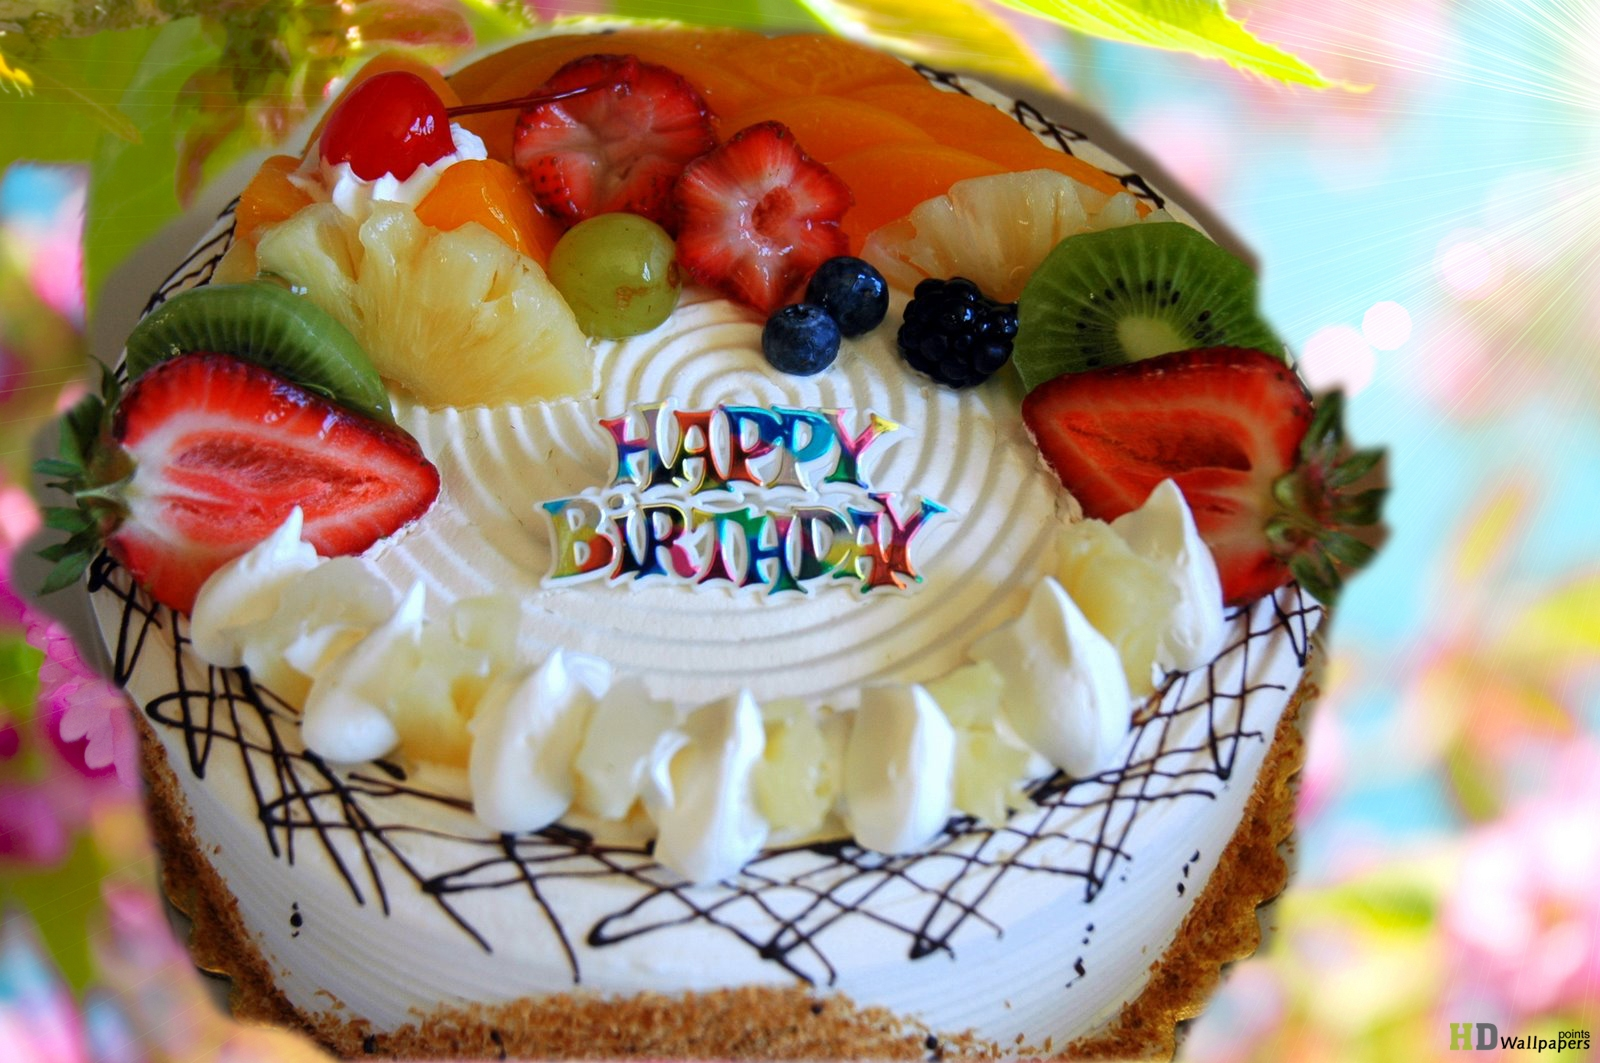 birthday download ; birthday-cake-images-free-download-birthday-cake-pictures-free-download-clipartsgram-with-white-cream-cake-design-with-fruits-ideas